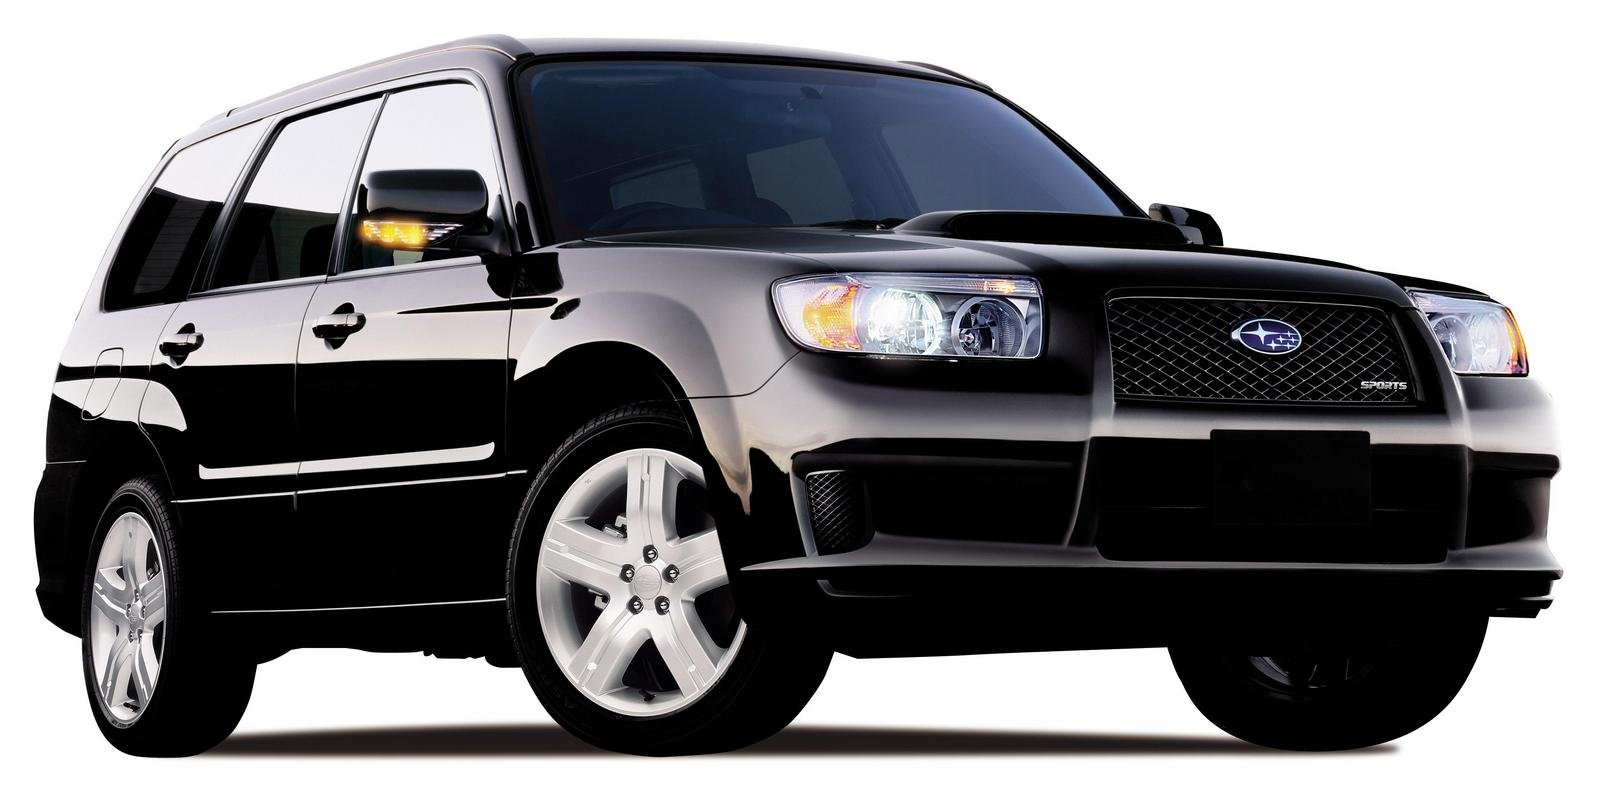 2007 subaru forester sports review top speed. Black Bedroom Furniture Sets. Home Design Ideas